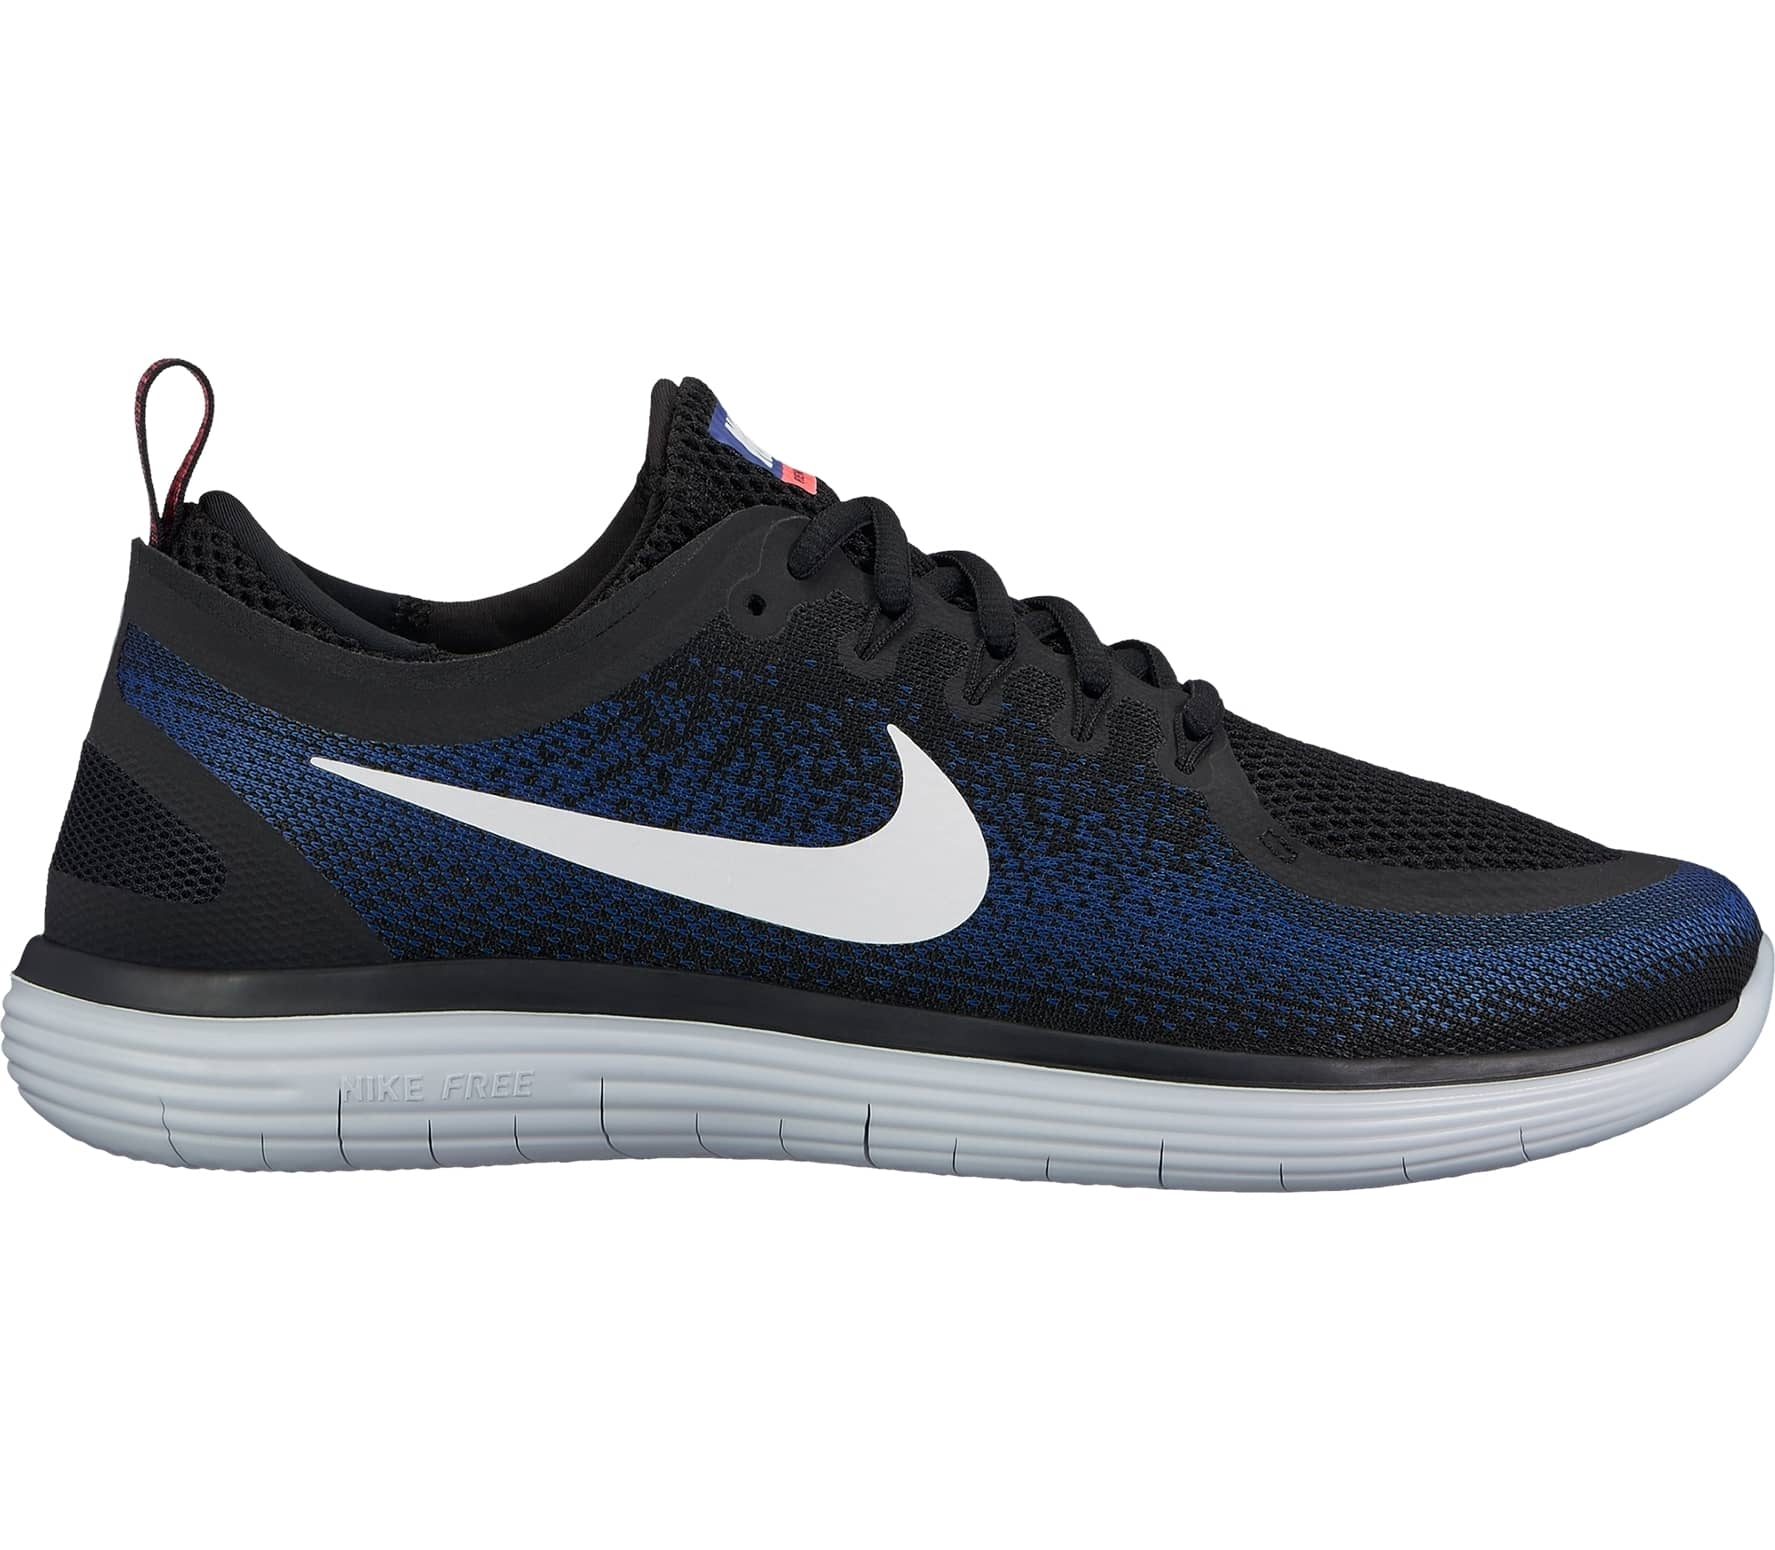 9a46a886b5a9 Nike - Free RN Distance 2 men s running shoes (black dark blue ...